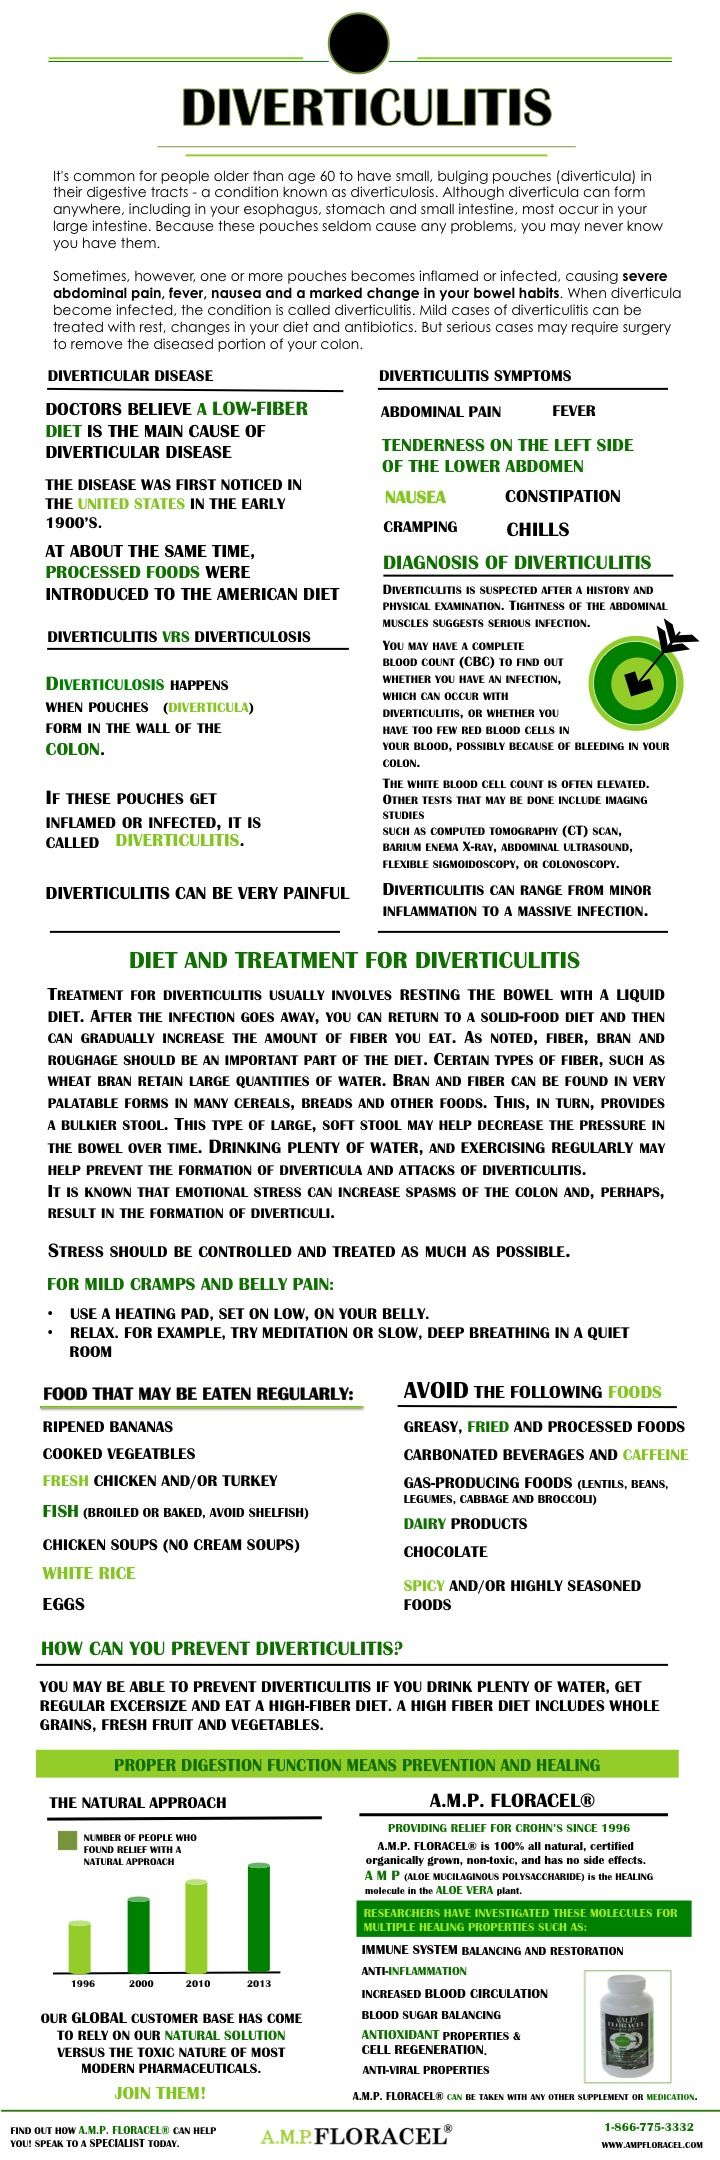 17+ best ideas about Diverticulitis Diet on Pinterest ...